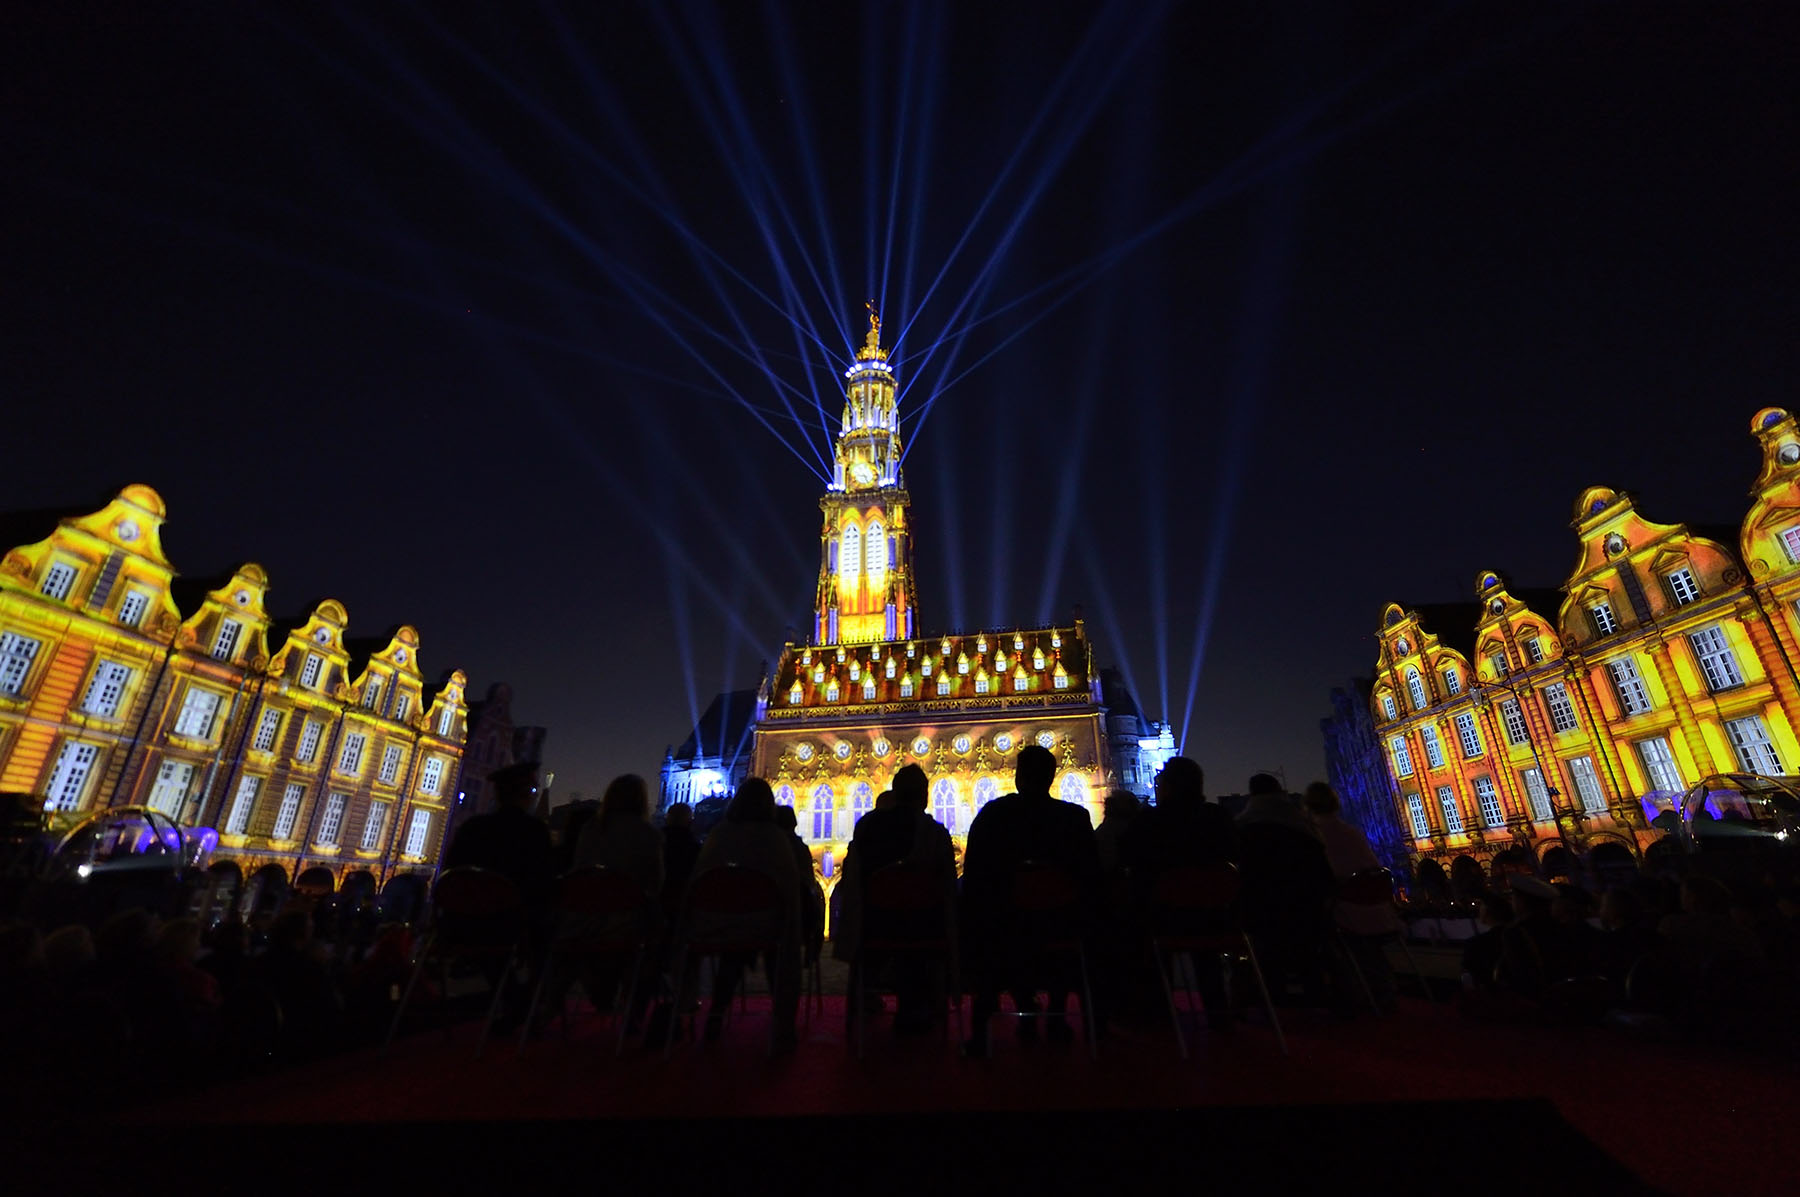 The show, which was projected onto the Town Hall in the Place des Héros, featured key figures, events and achievements in Canadian history.